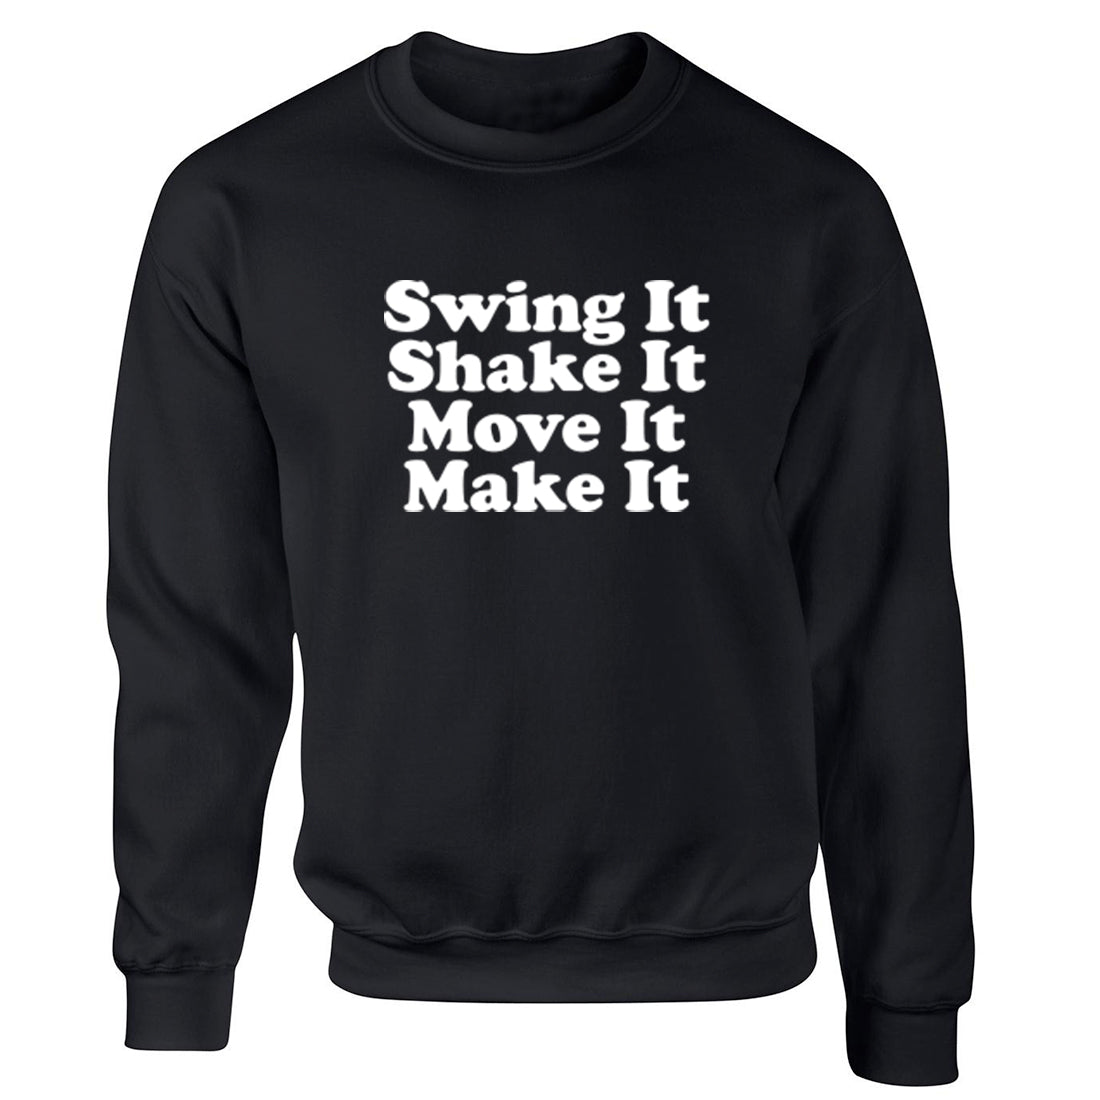 Swing It Shake It Move It Make It-Spice Girls Childrens Ages 3/4-12/14 Unisex Jumper K2430 - Illustrated Identity Ltd.